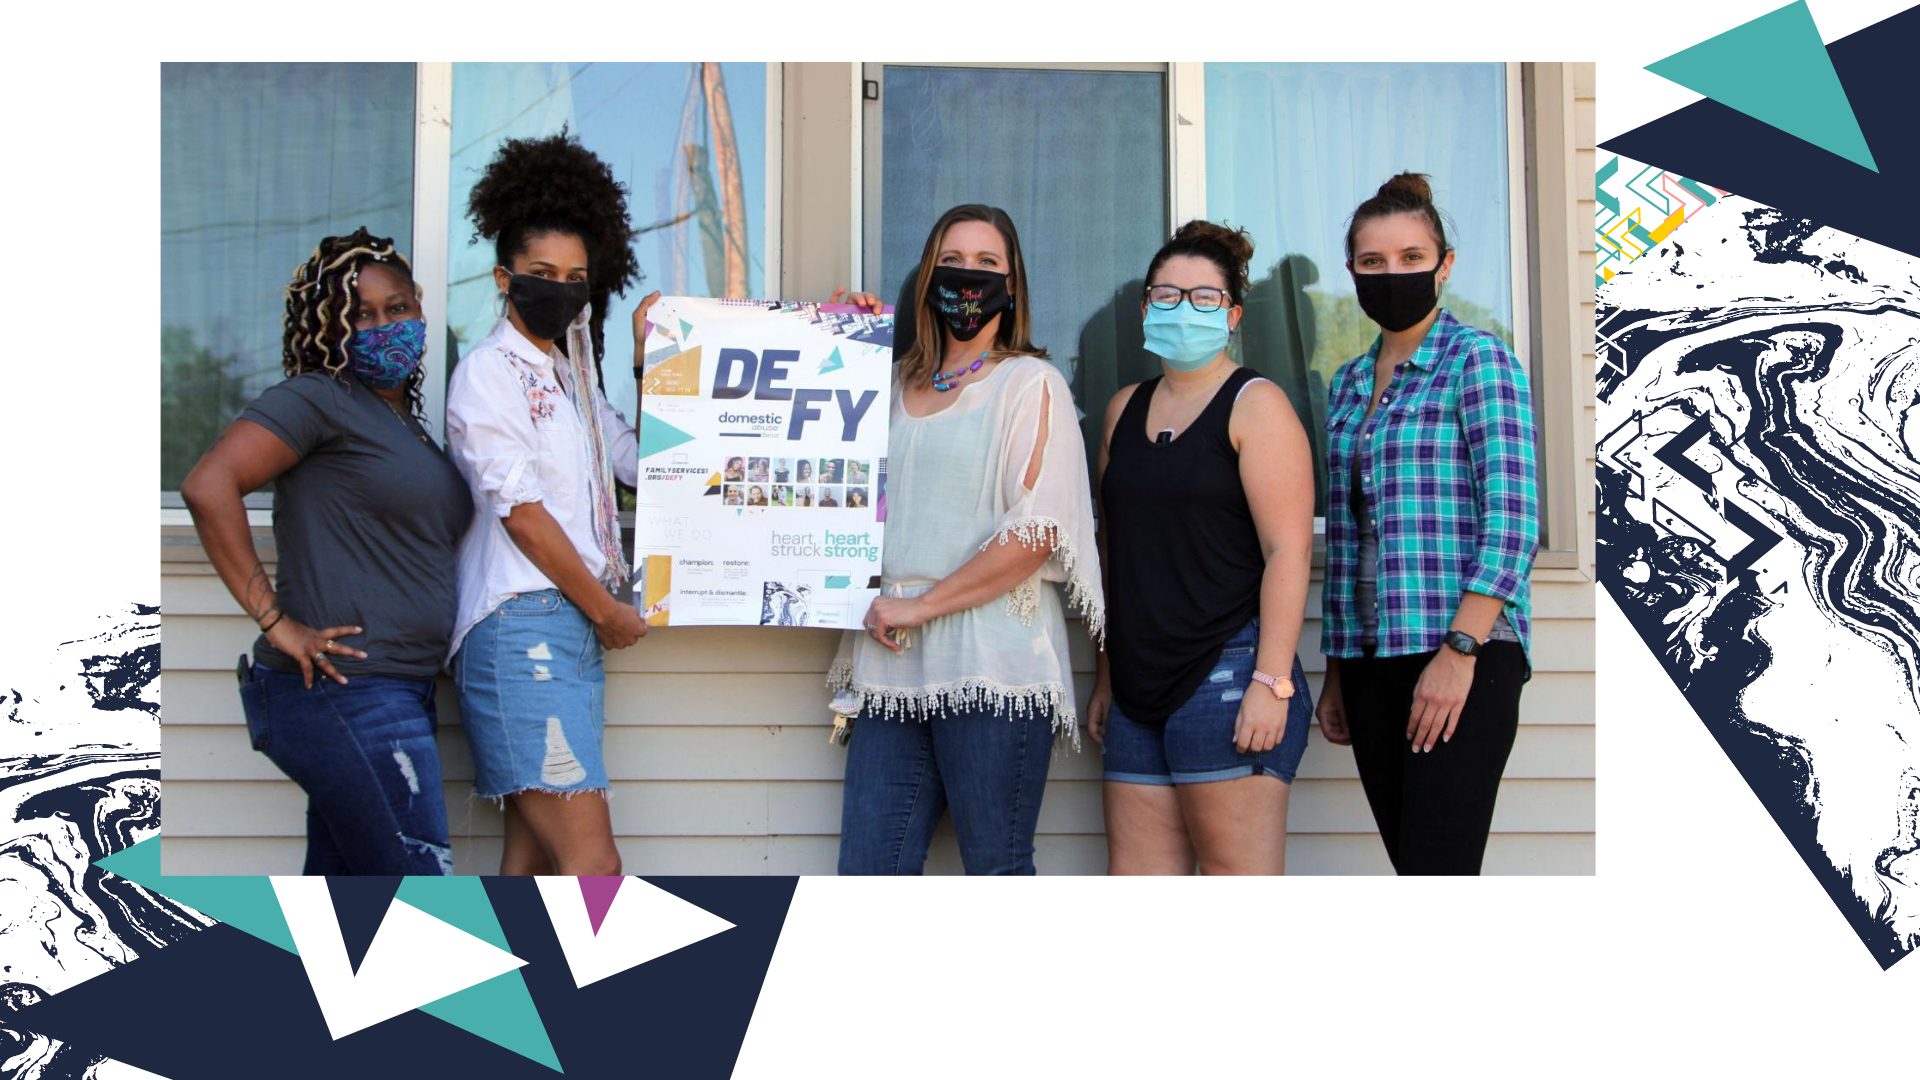 A photo of advocacy staff holding a poster advertisement made for Defy Domestic Abuse Beloit as part of their marketing project with Owl Street Studio.